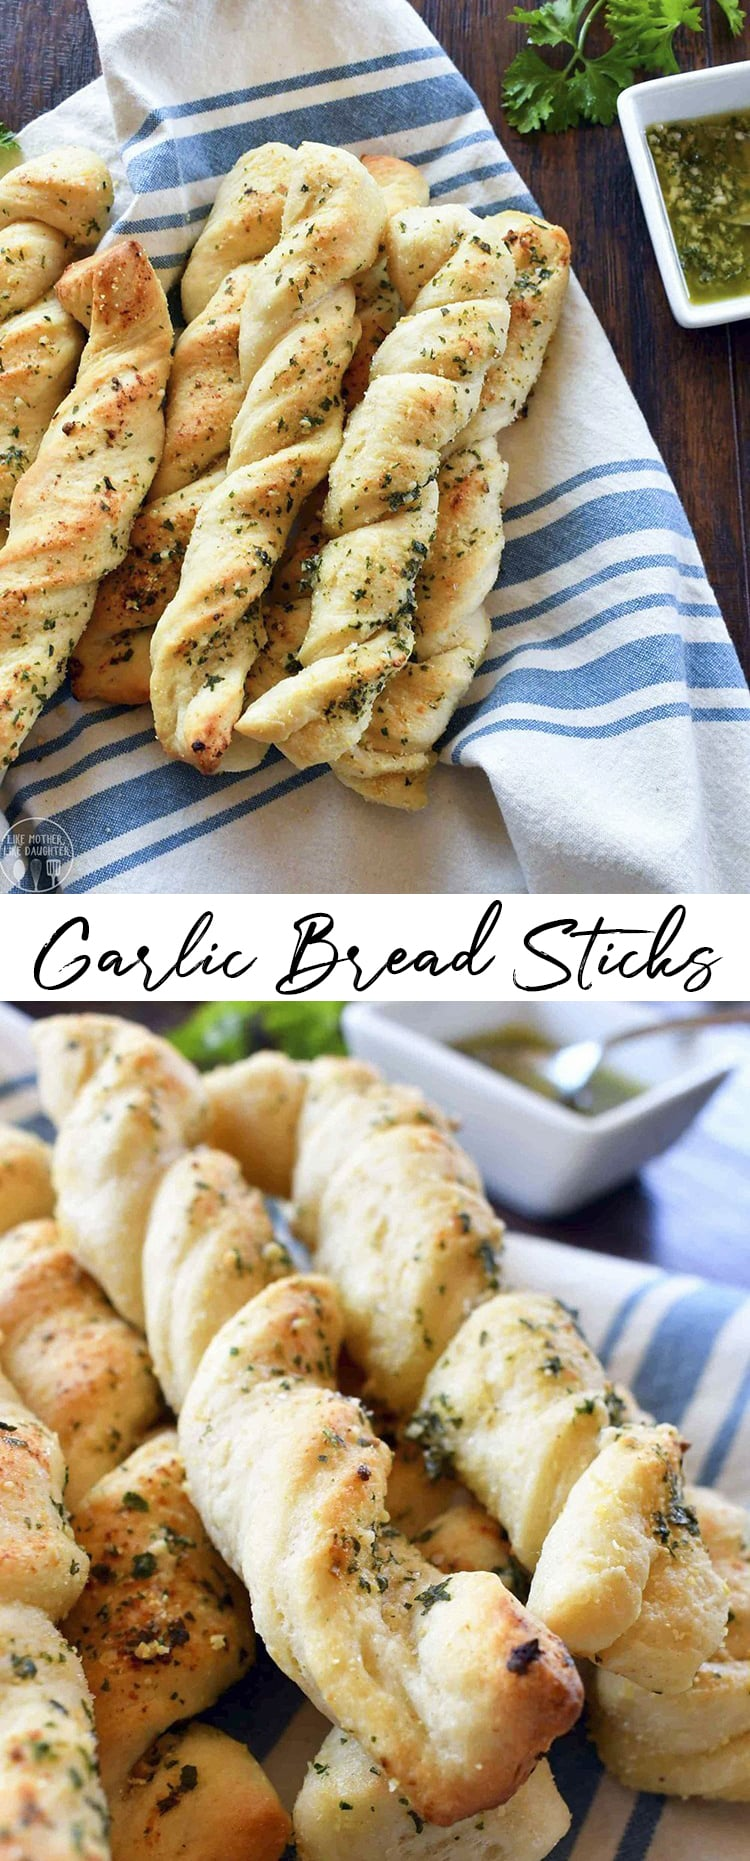 These homemade garlic bread sticks are perfect paired with soups, salads, pastas, pizzas, and more! They're covered in melted butter and herbs and the easiest bread sticks you'll have make.